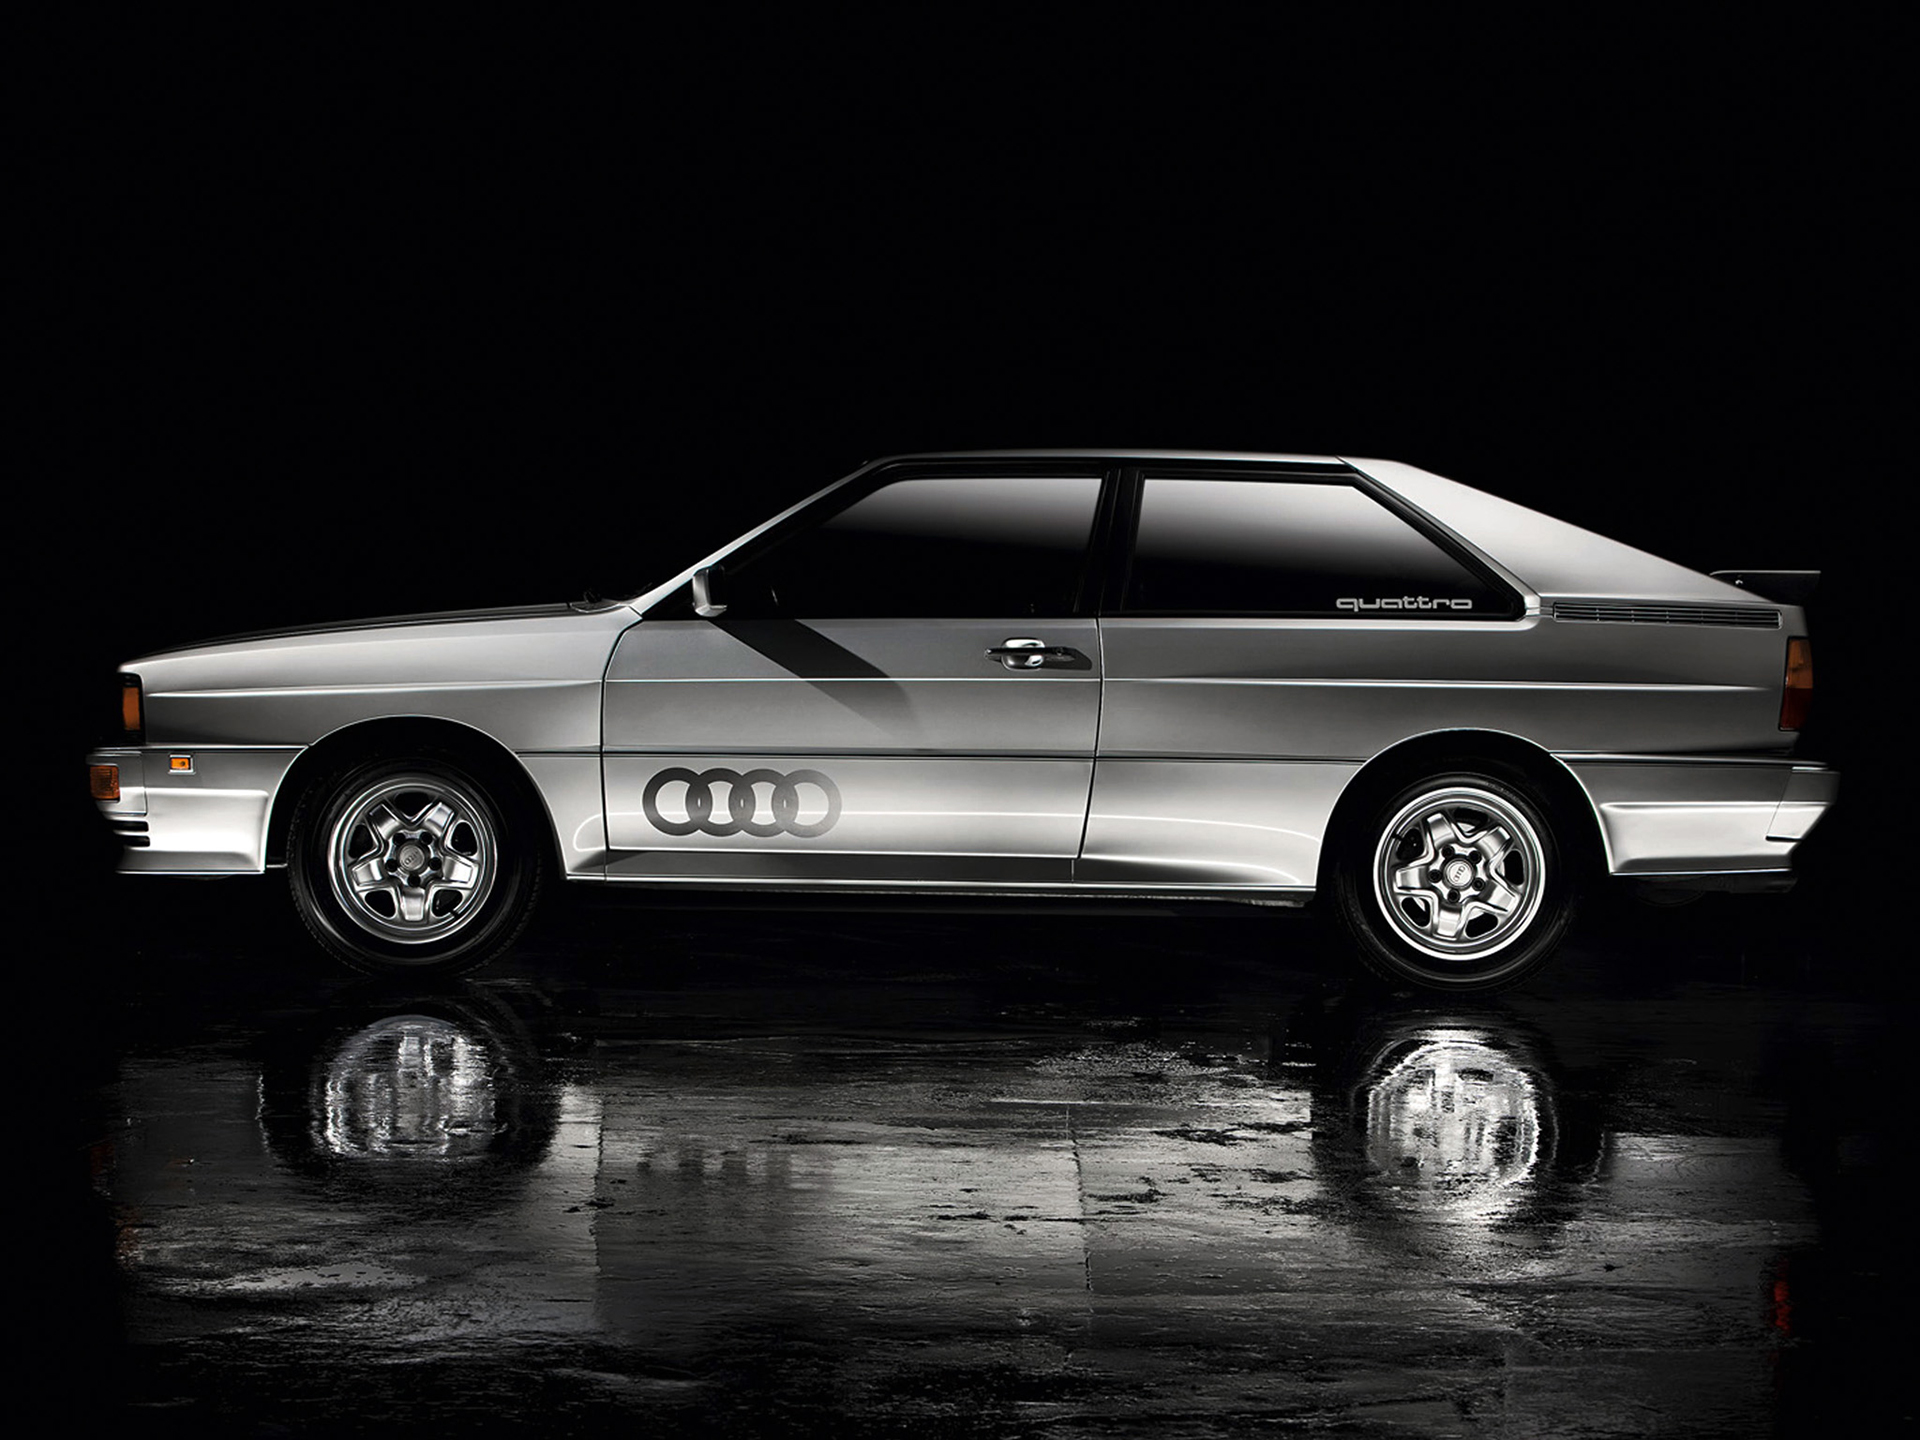 Audi quattro - 1980 - side-face / profil